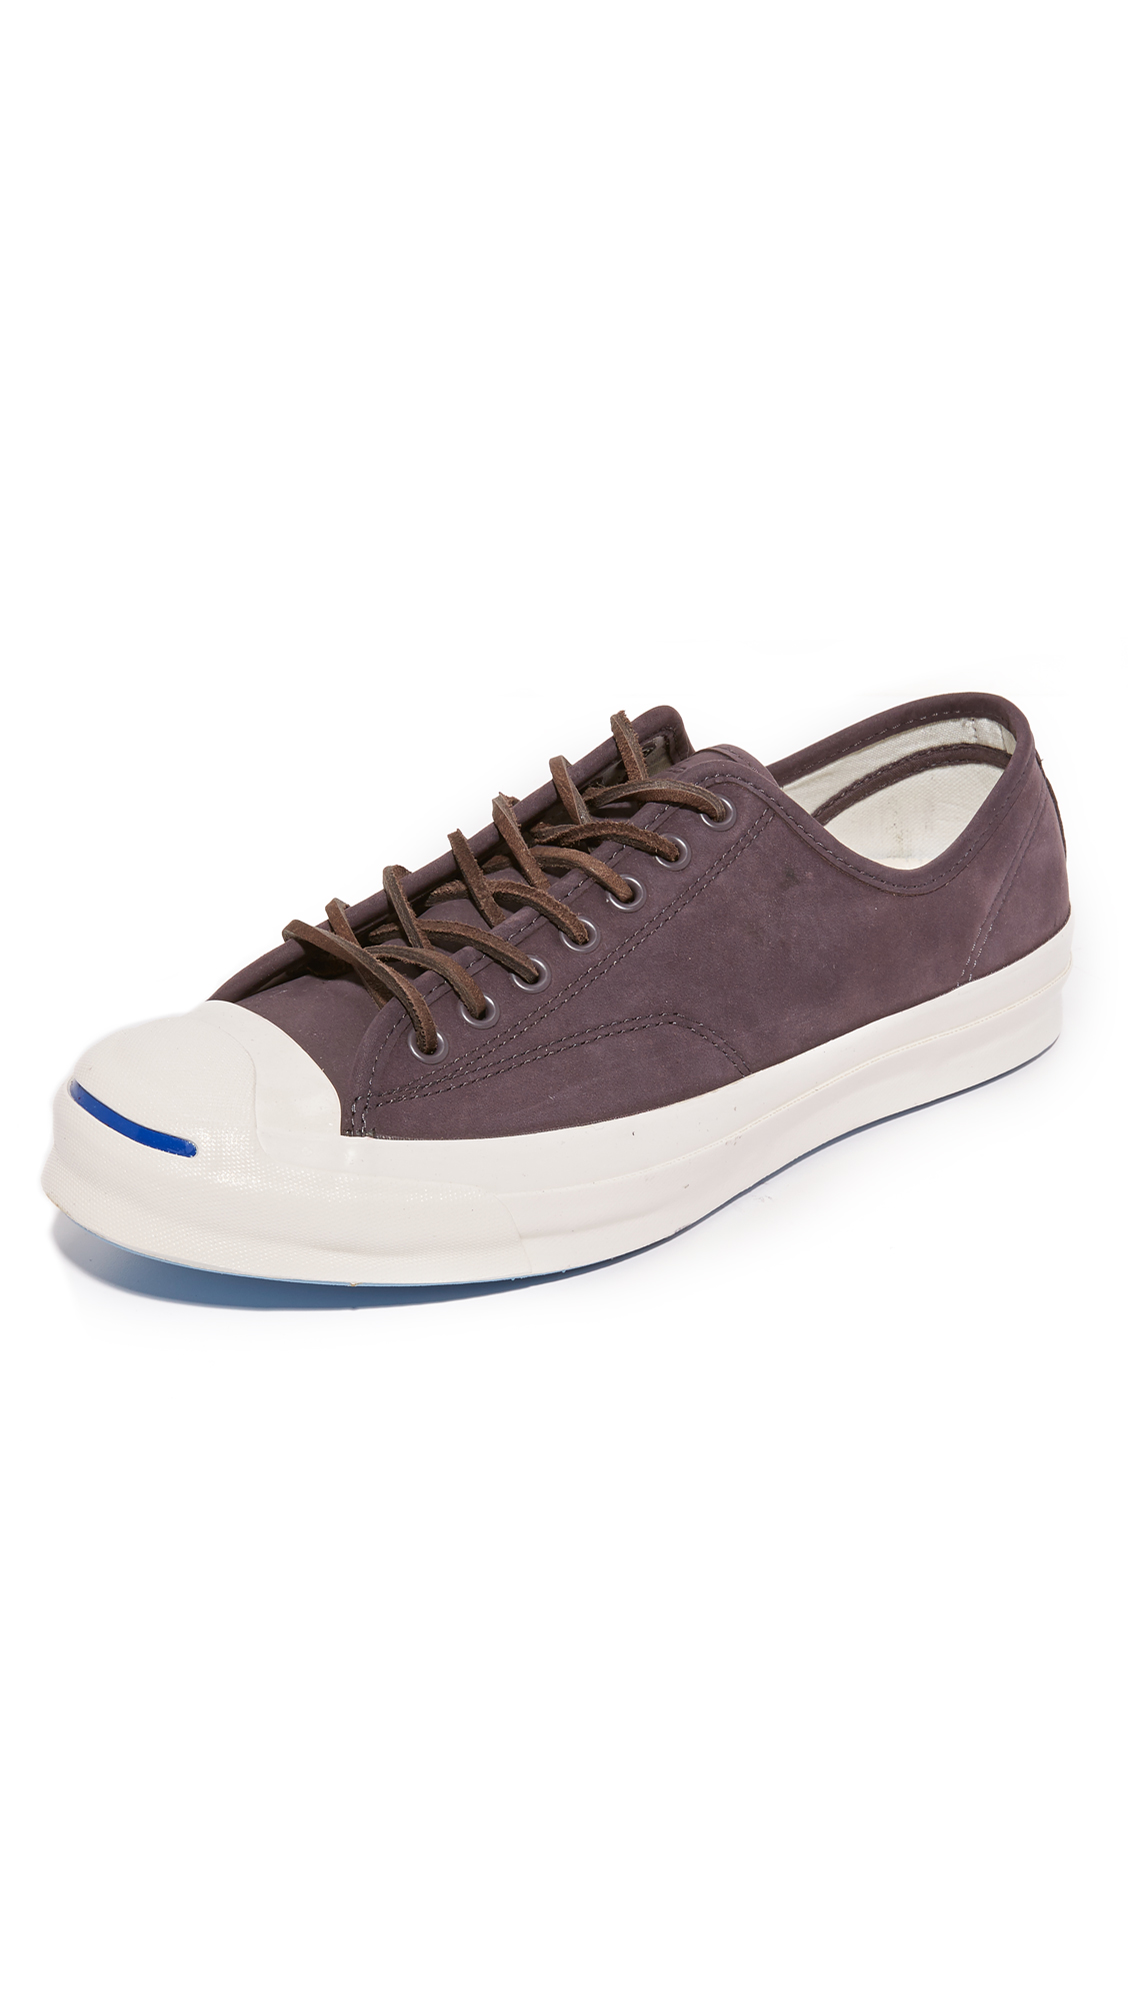 5bc19711f071 ... low price converse jack purcell signature nubuck sneakers dusk grey  dusk grey egret 957ac 11b28